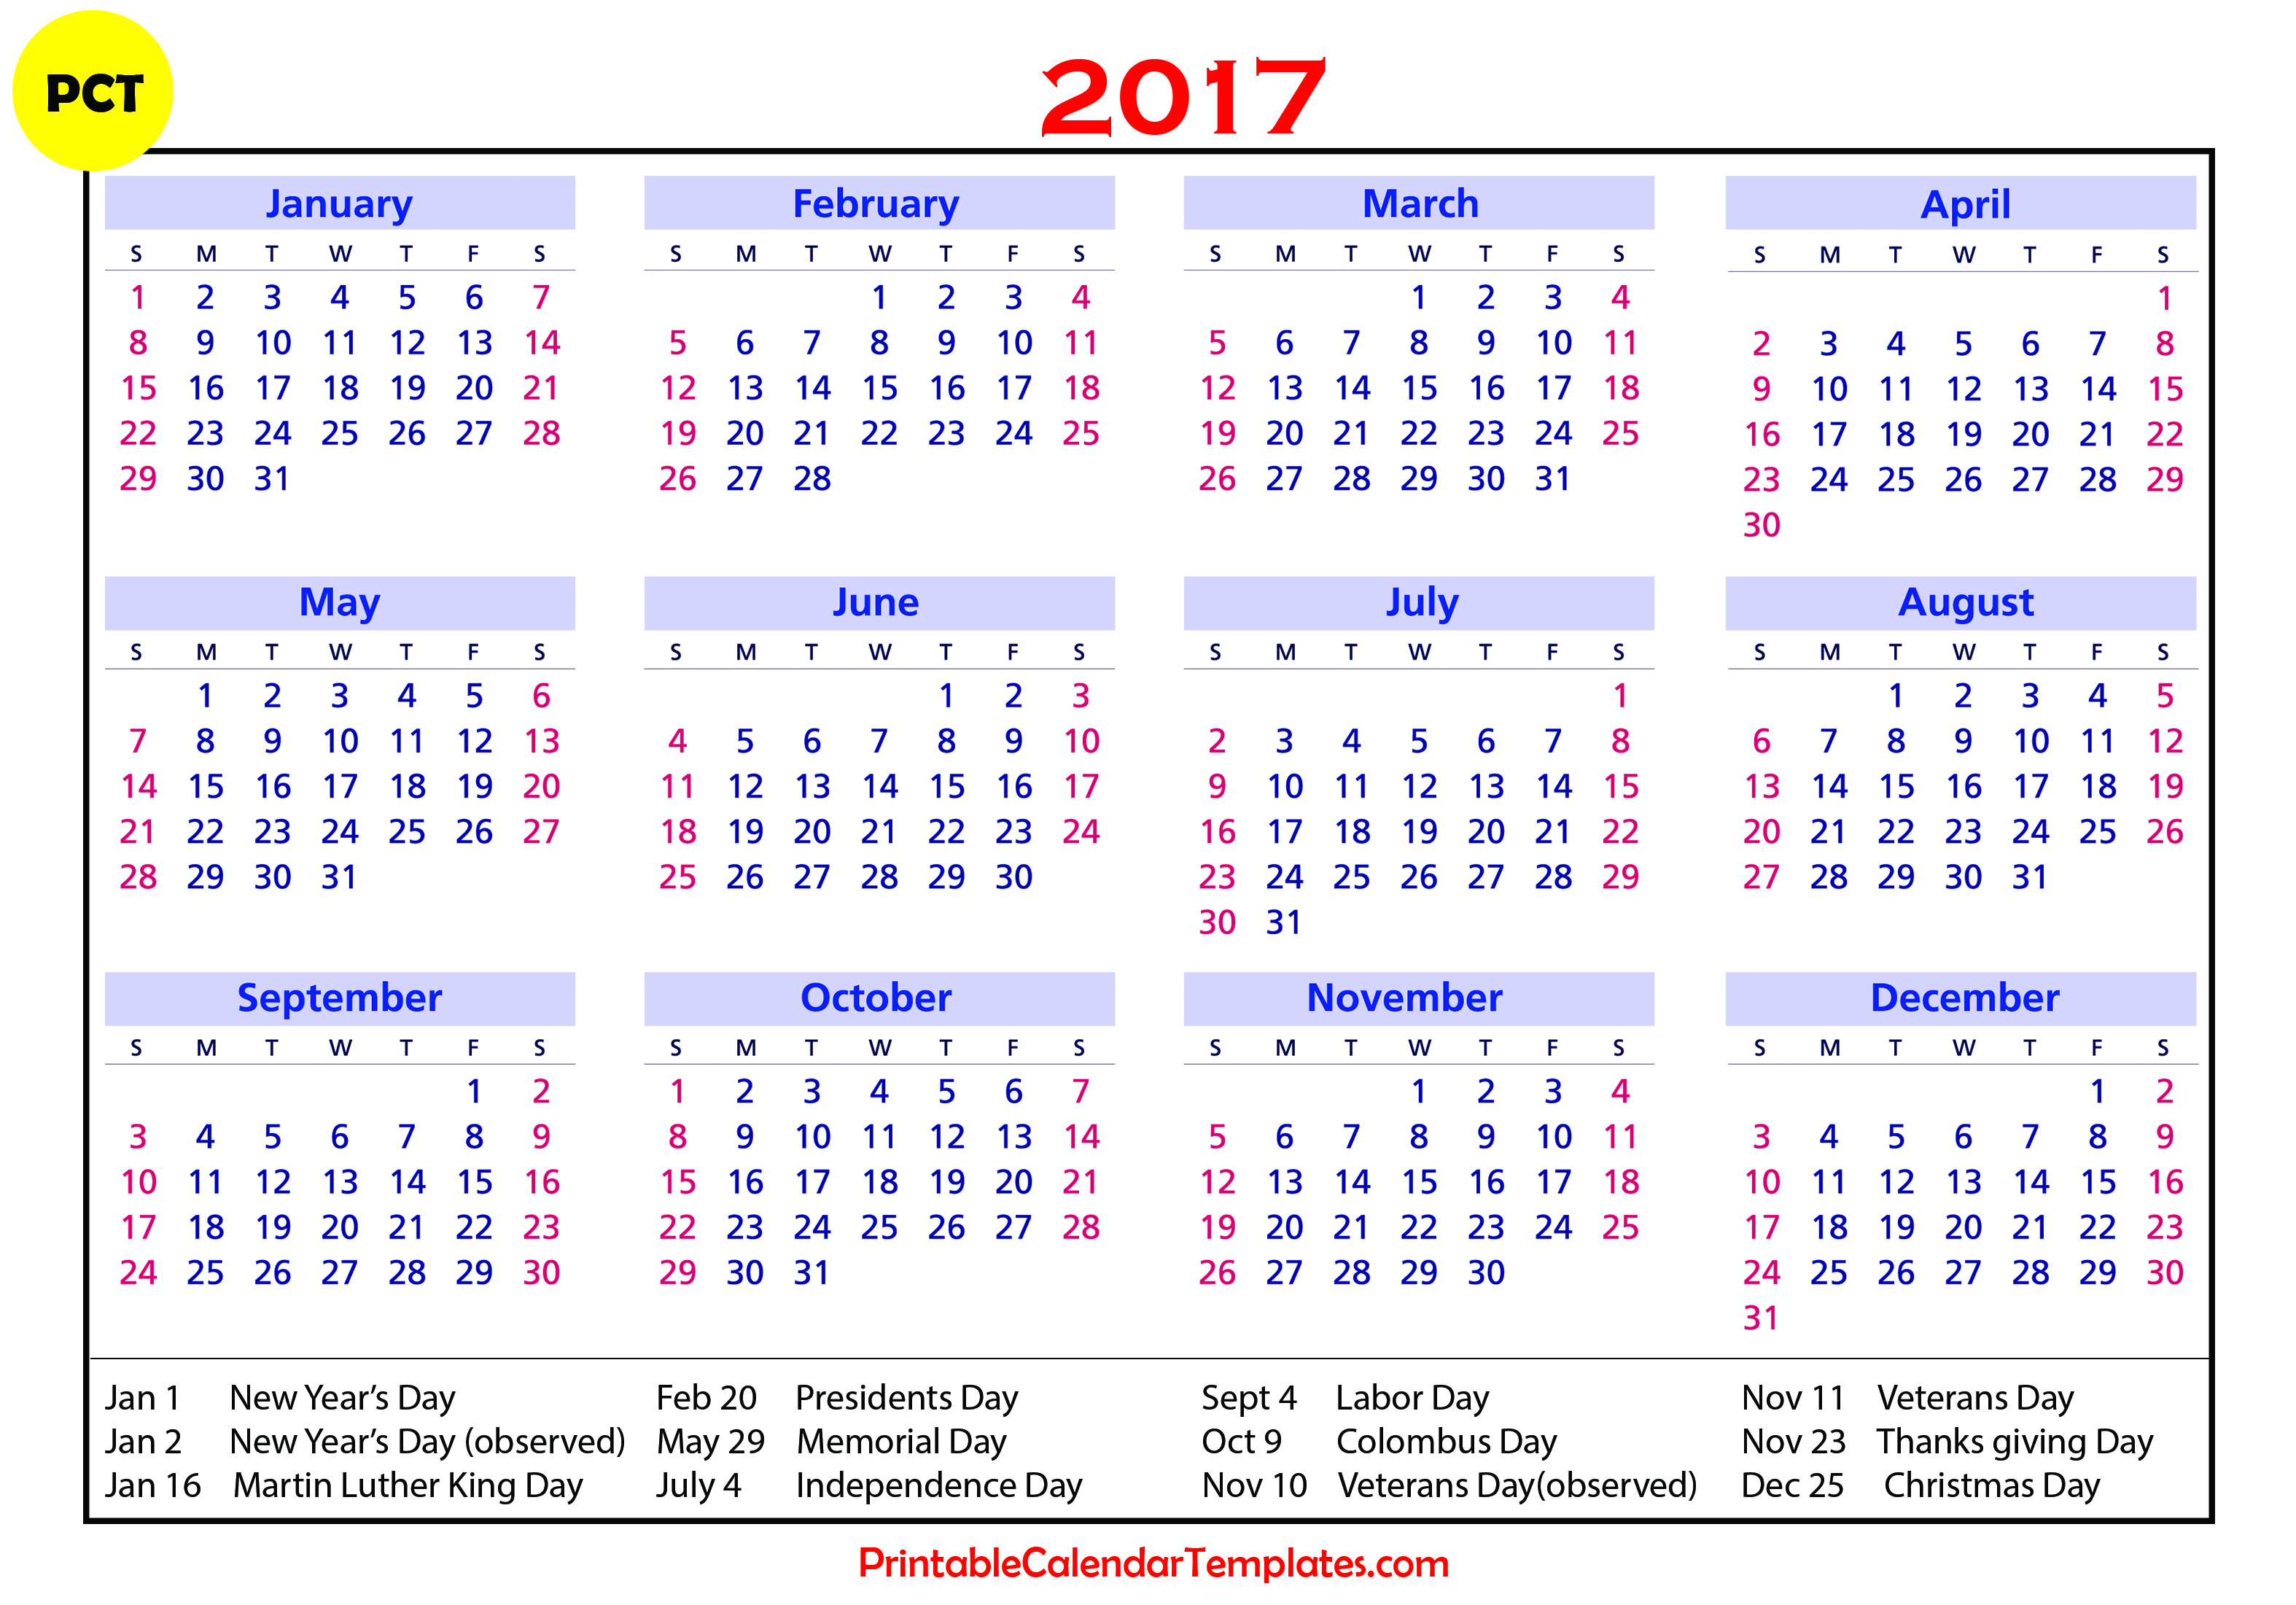 Printable Julian Calendar 2017 (84+ Images In Collection) Page 1